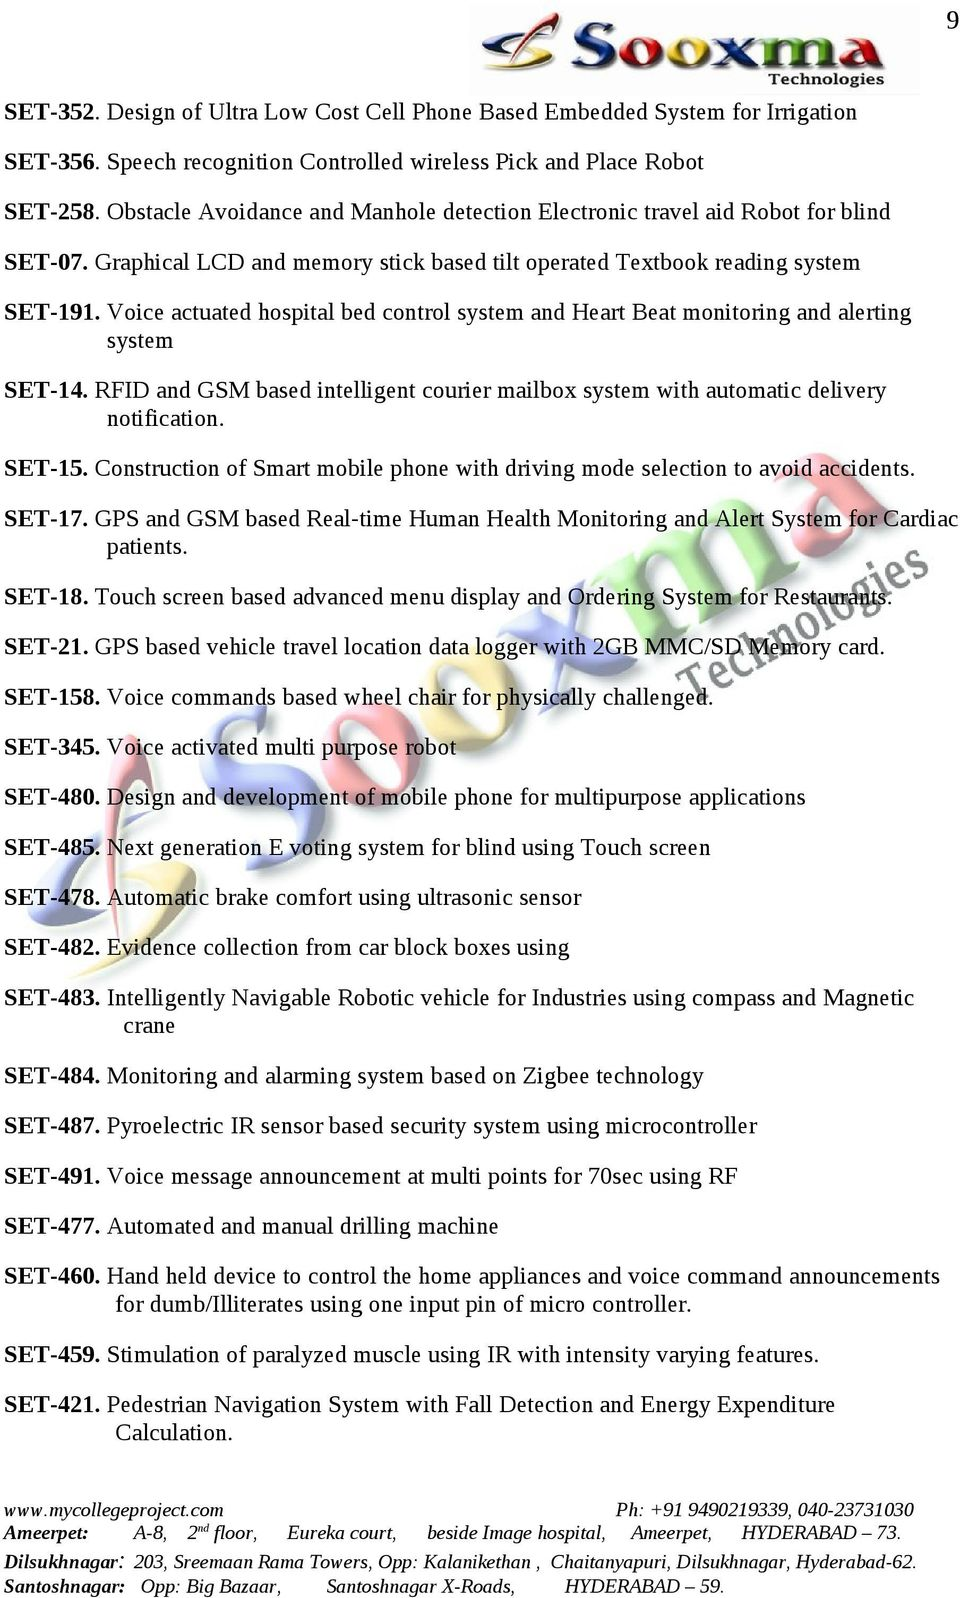 Innovative Ece Final Projects List Pdf Warning Mailbox Electronic Project Circuit Design Schematic Voice Actuated Hospital Bed Control System And Heart Beat Monitoring Alerting Set 14